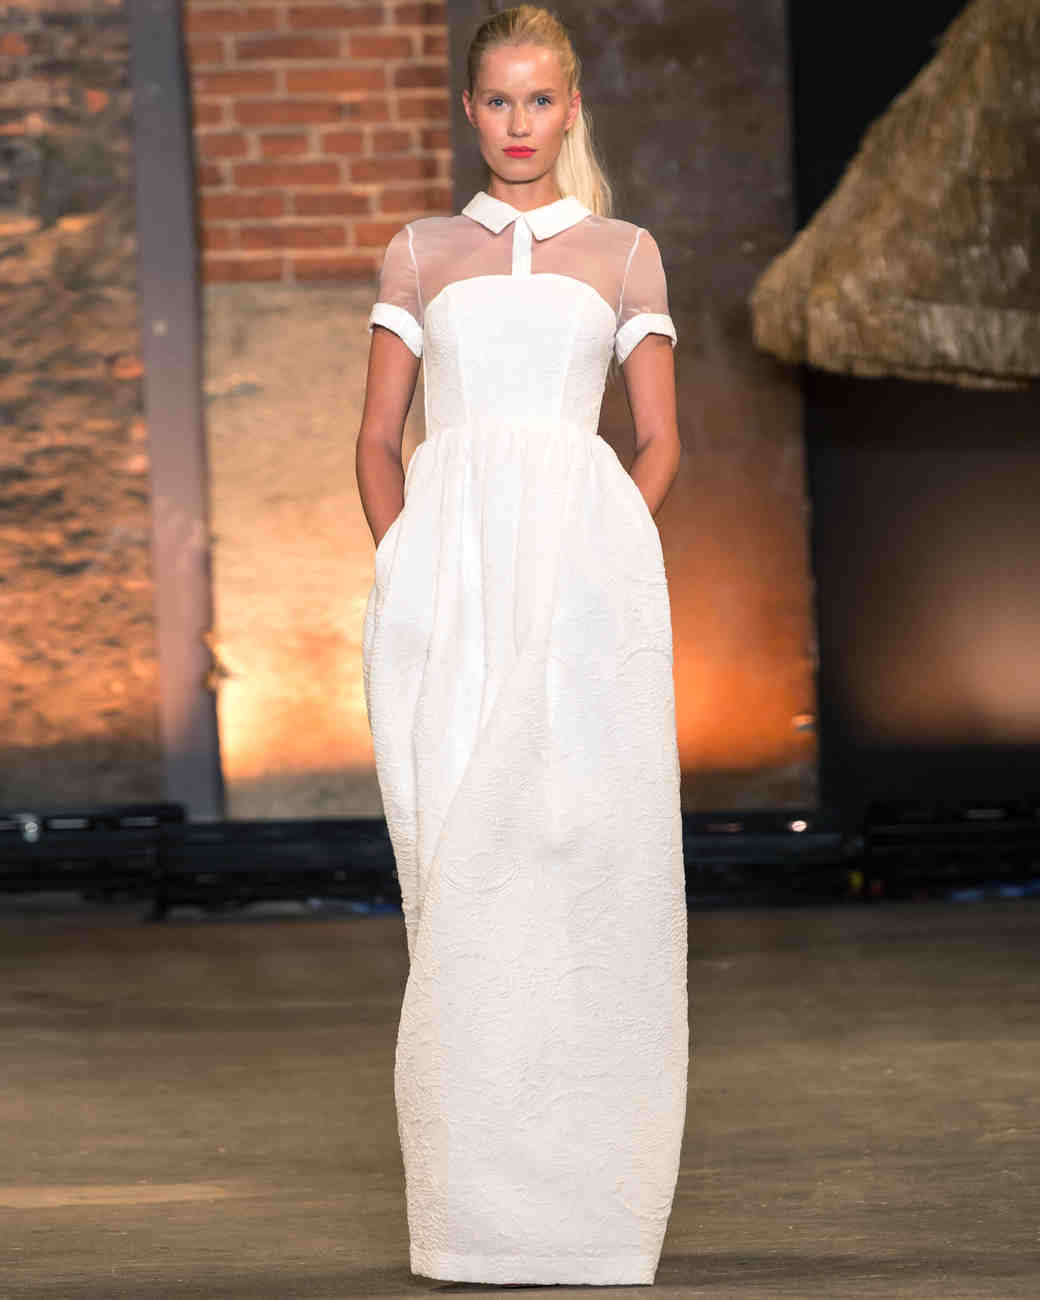 christian-siriano-6-high-res.jpg